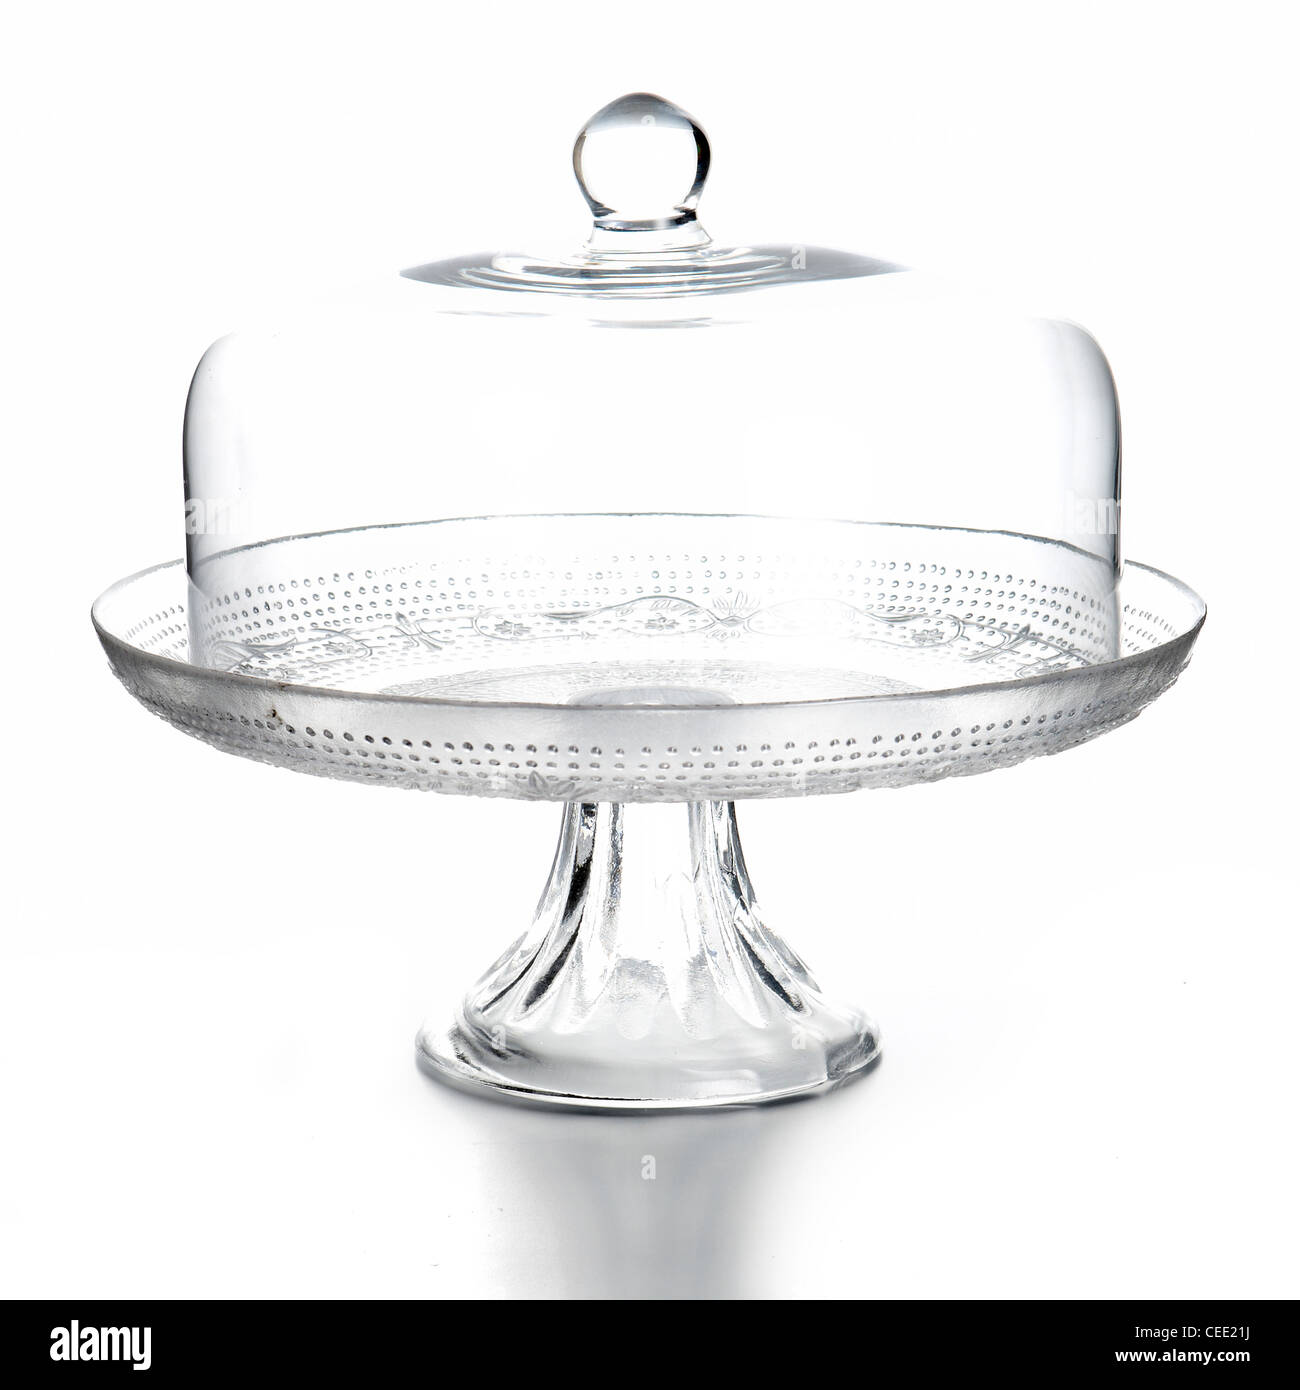 empty glass cake stand and dome cover  sc 1 st  Alamy & empty glass cake stand and dome cover Stock Photo: 43334862 - Alamy